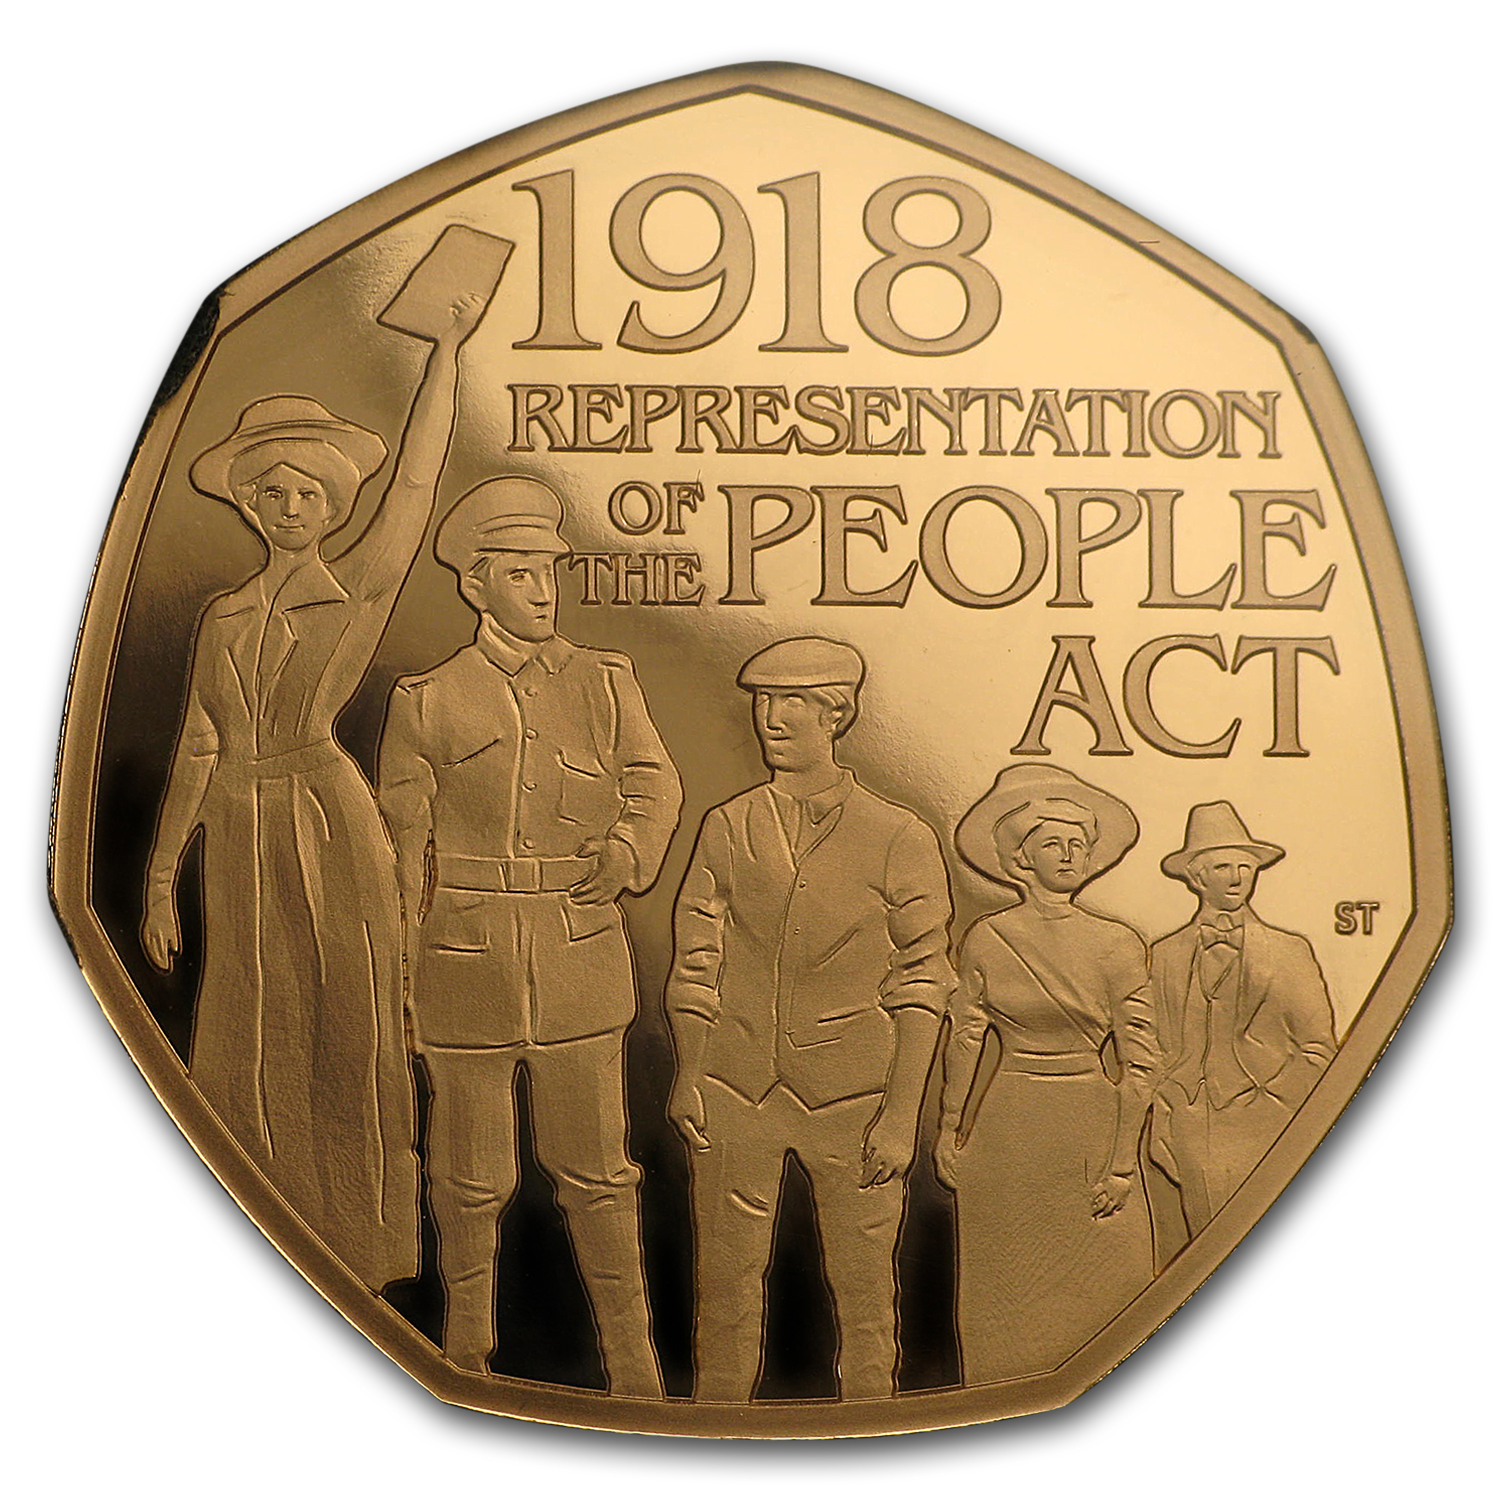 2018 Great Britain 50p Proof Gold Representation of the People